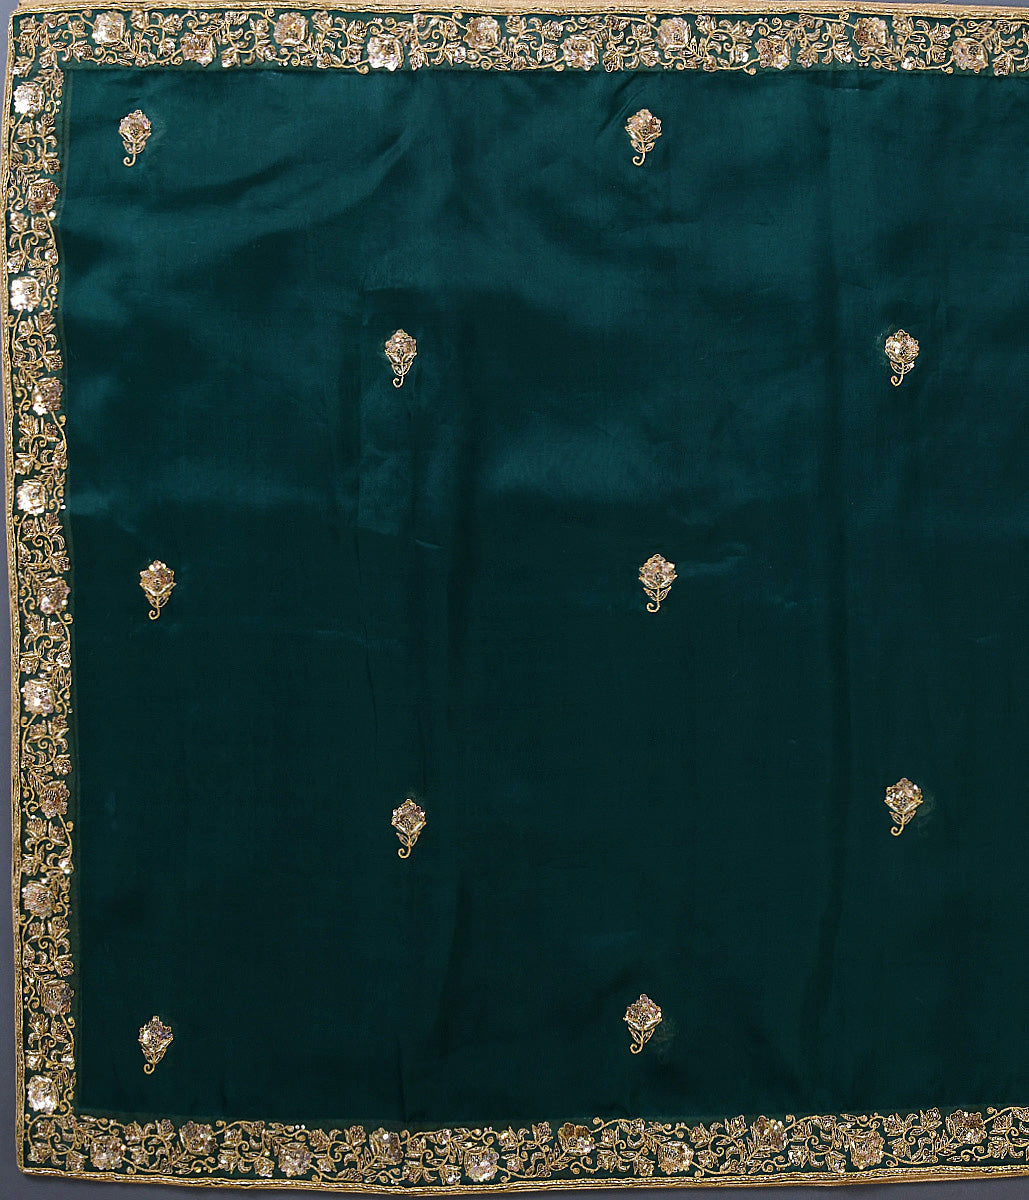 Handwoven Green Organza Dupatta with Zardozi Work